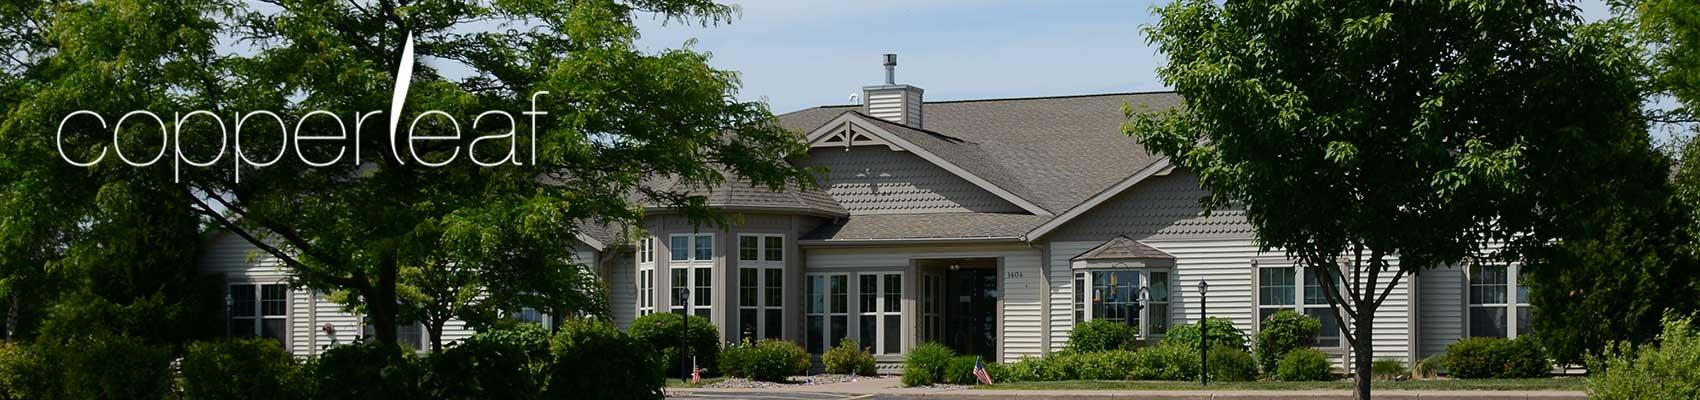 Assisted Living assisted living facilities West Rosendale Wisconsin Fond du Lac County